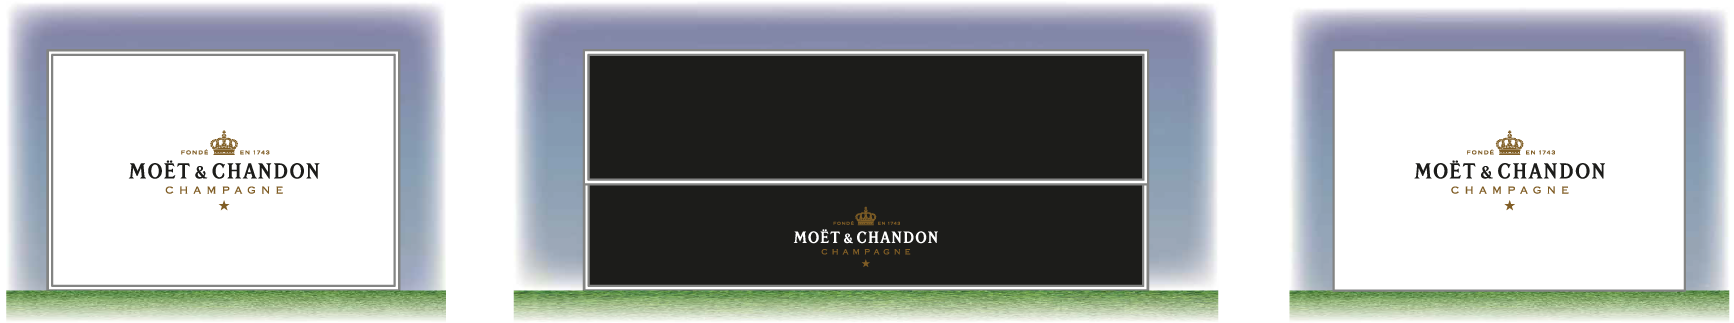 mote and chandon design and graphics